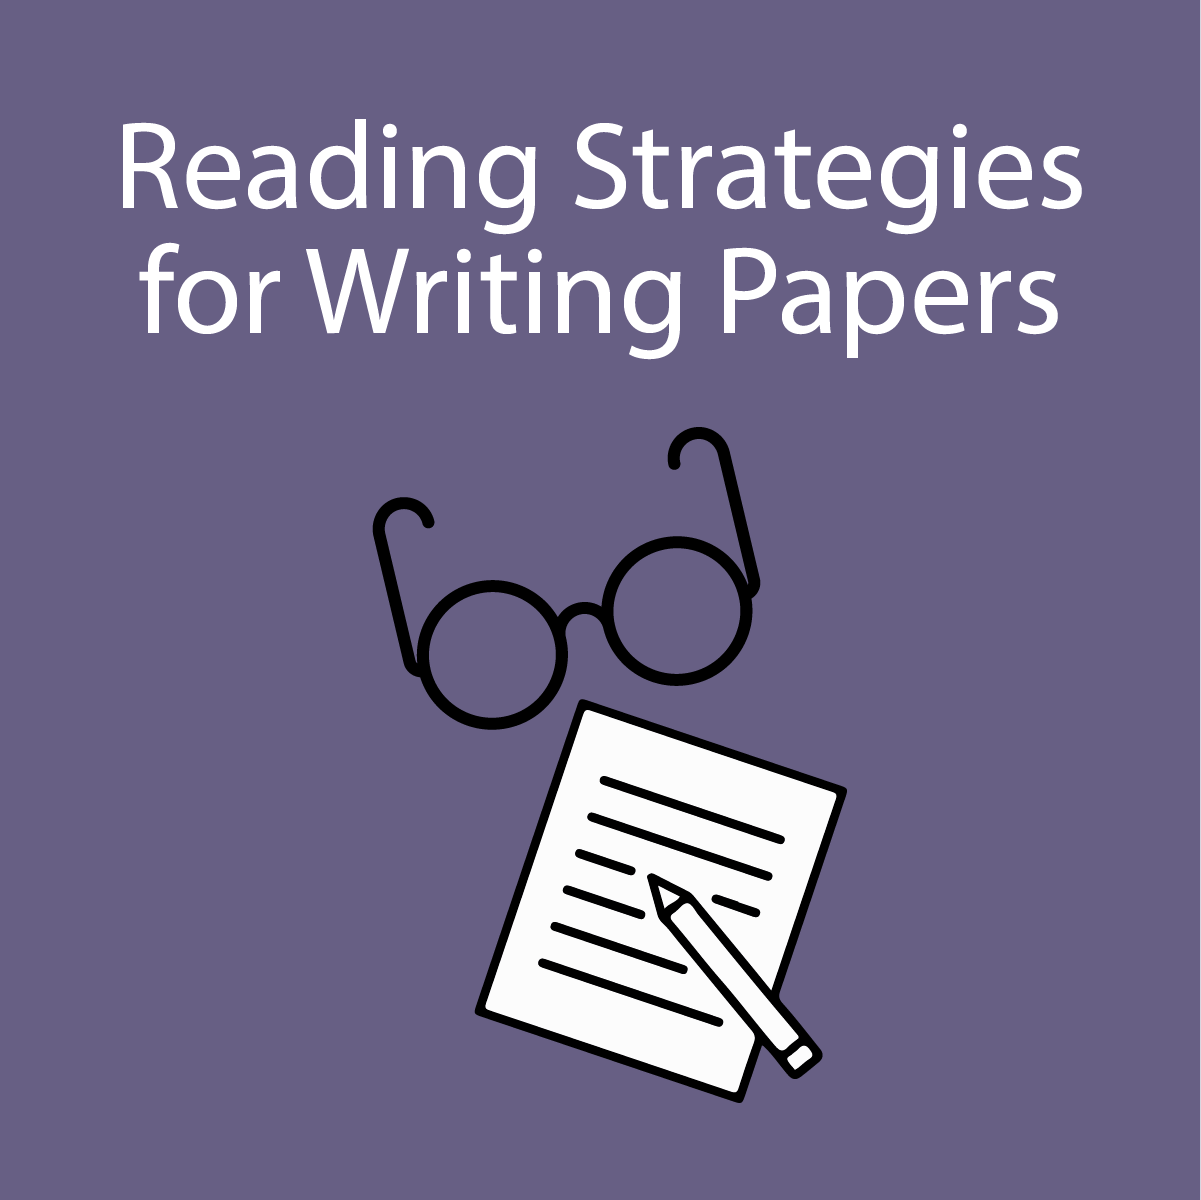 Reading Strategies for Writing Papers